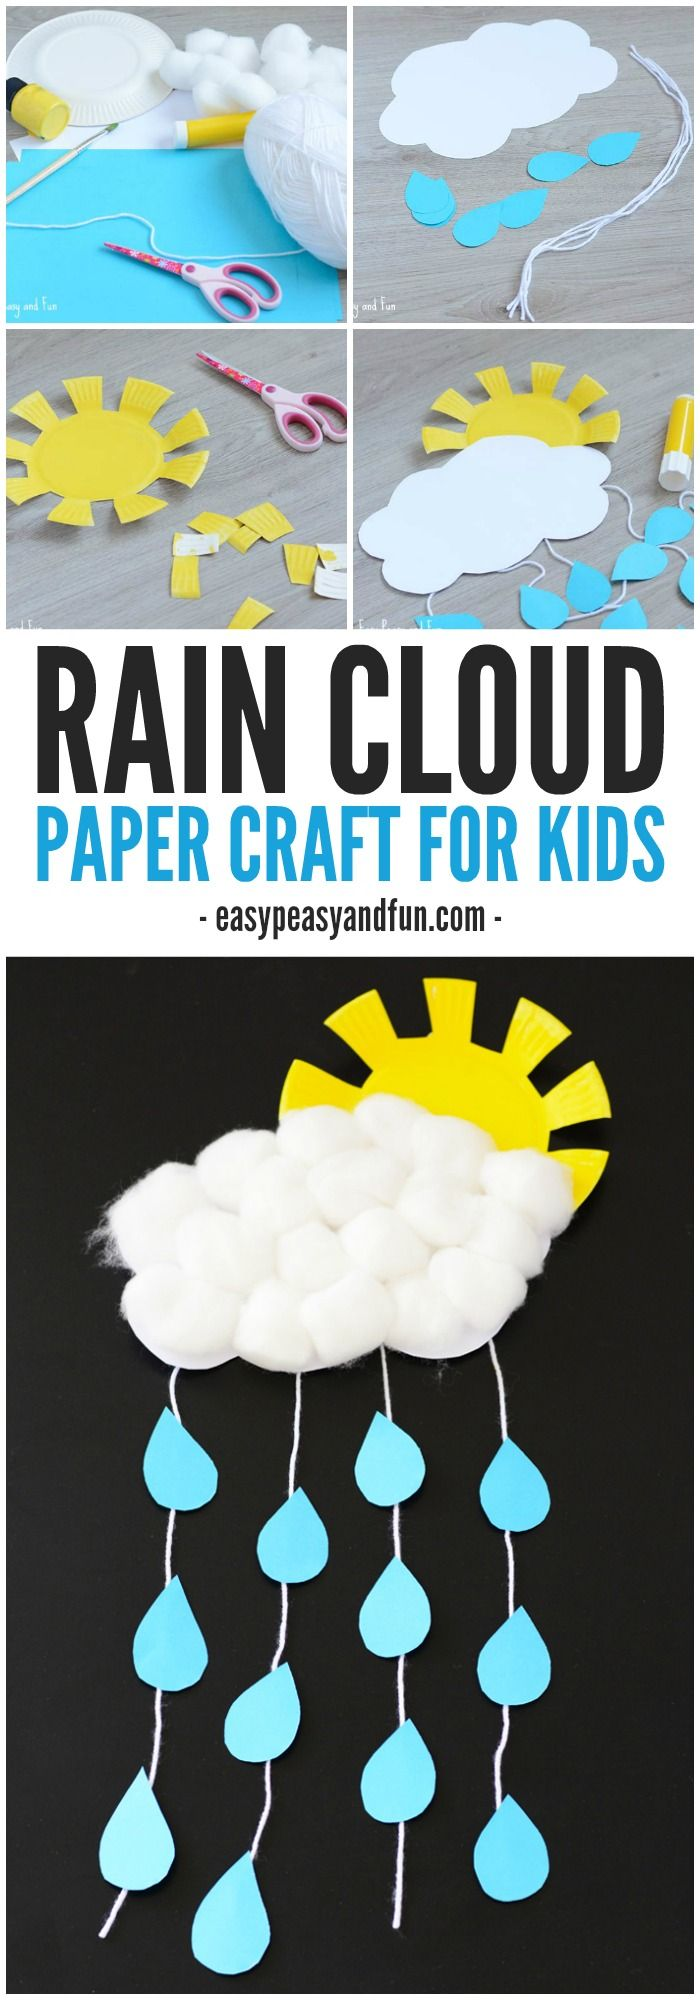 Rain Cloud Paper Craft for Kids to Make